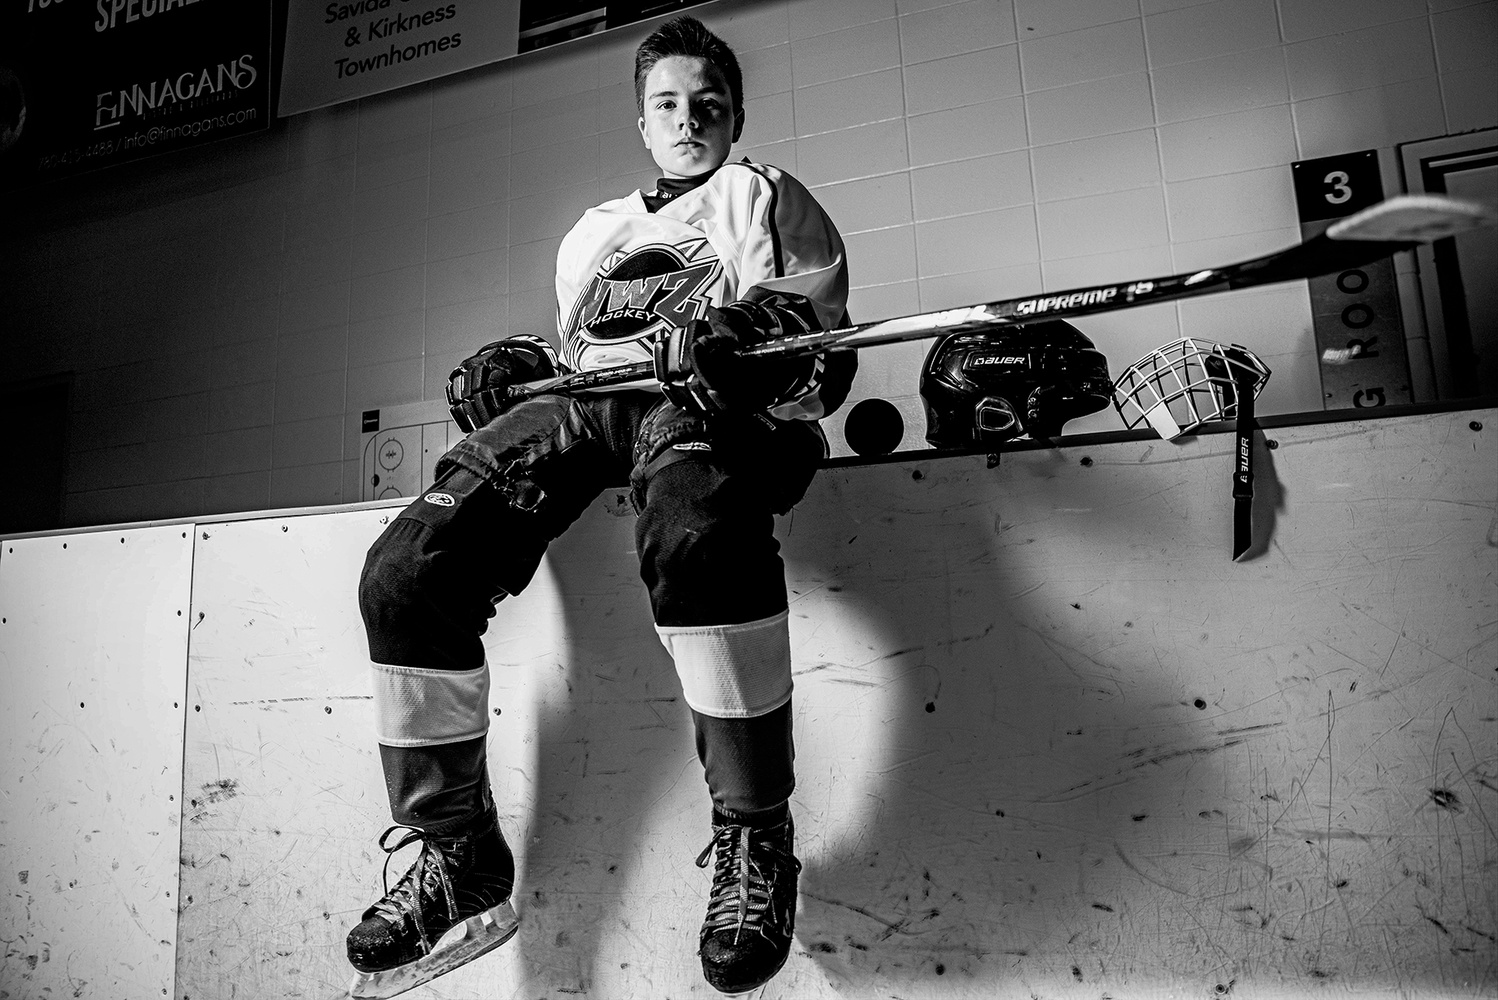 Hockey Portrait series by Mike Ofstedahl